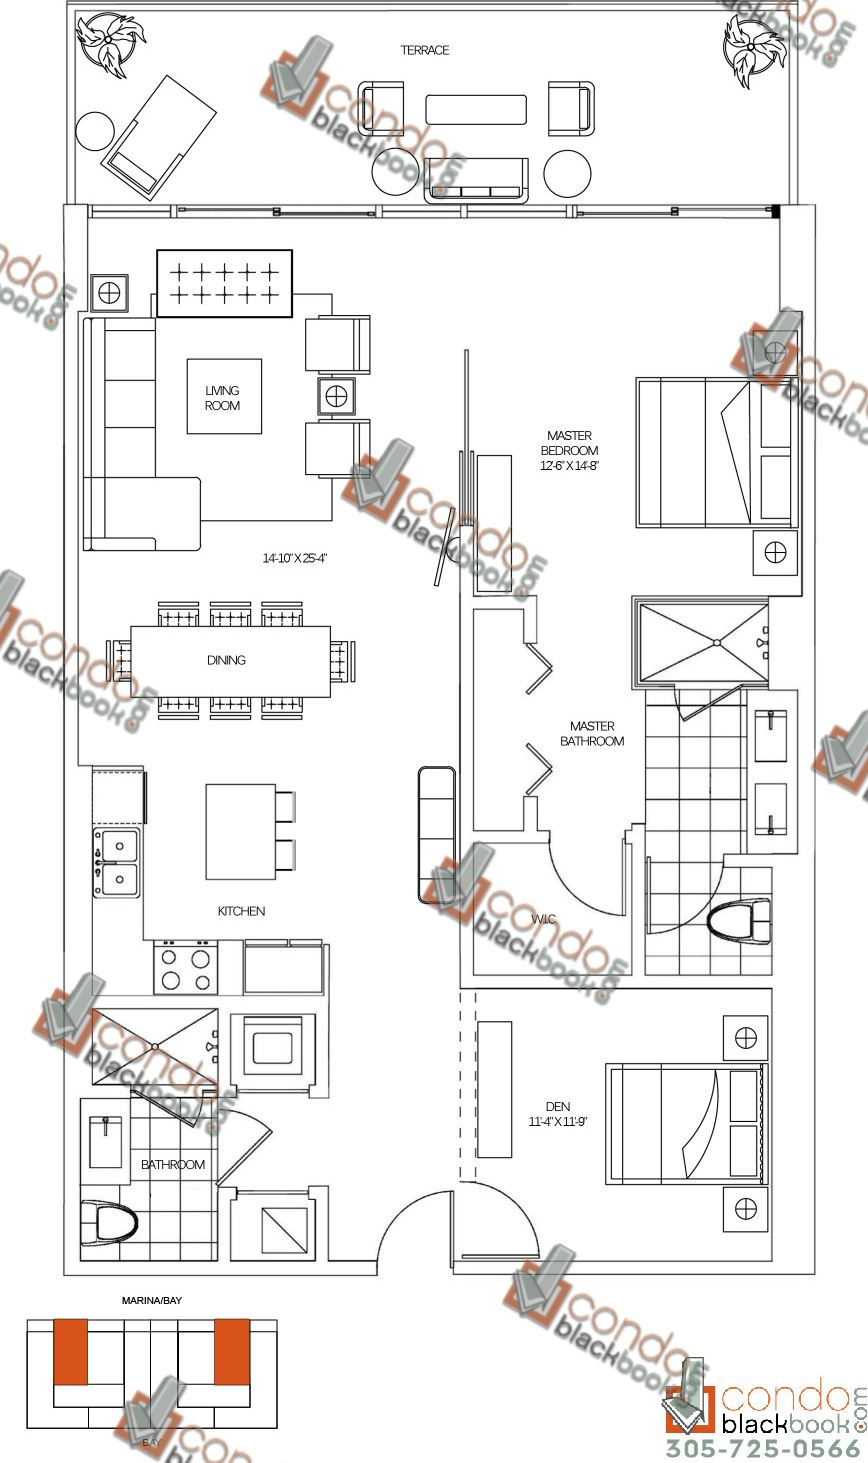 Floor plan for 400 Sunny Isles Sunny Isles Beach, model F, line 06, 1/2 bedrooms, 1,432 sq ft